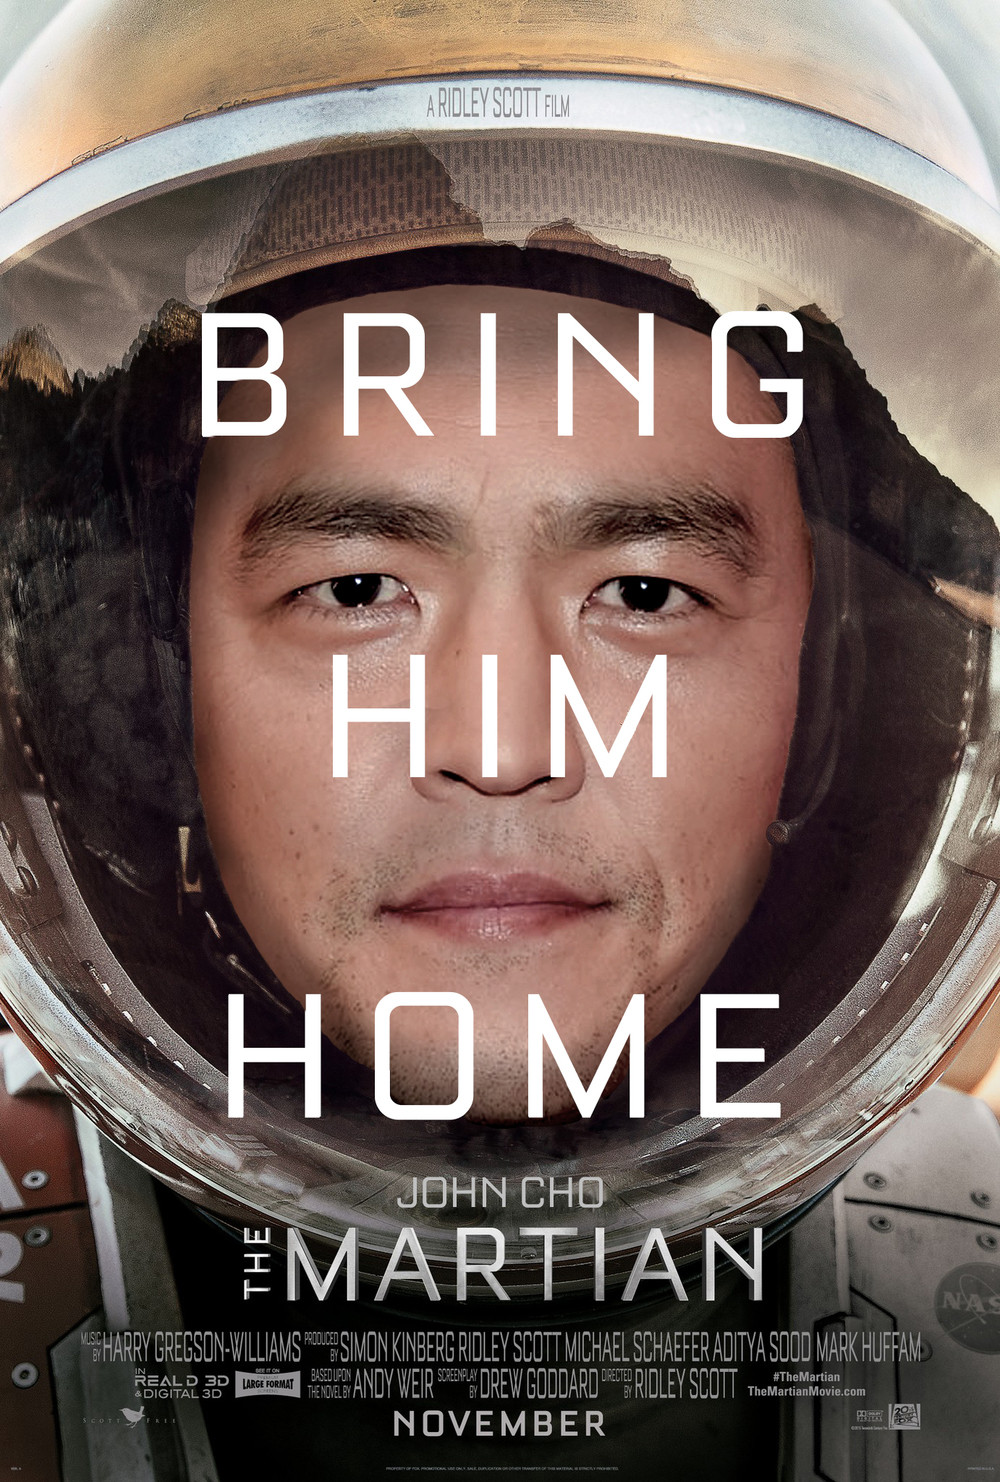 The Martian Poster Starringjohncho Know Your Meme